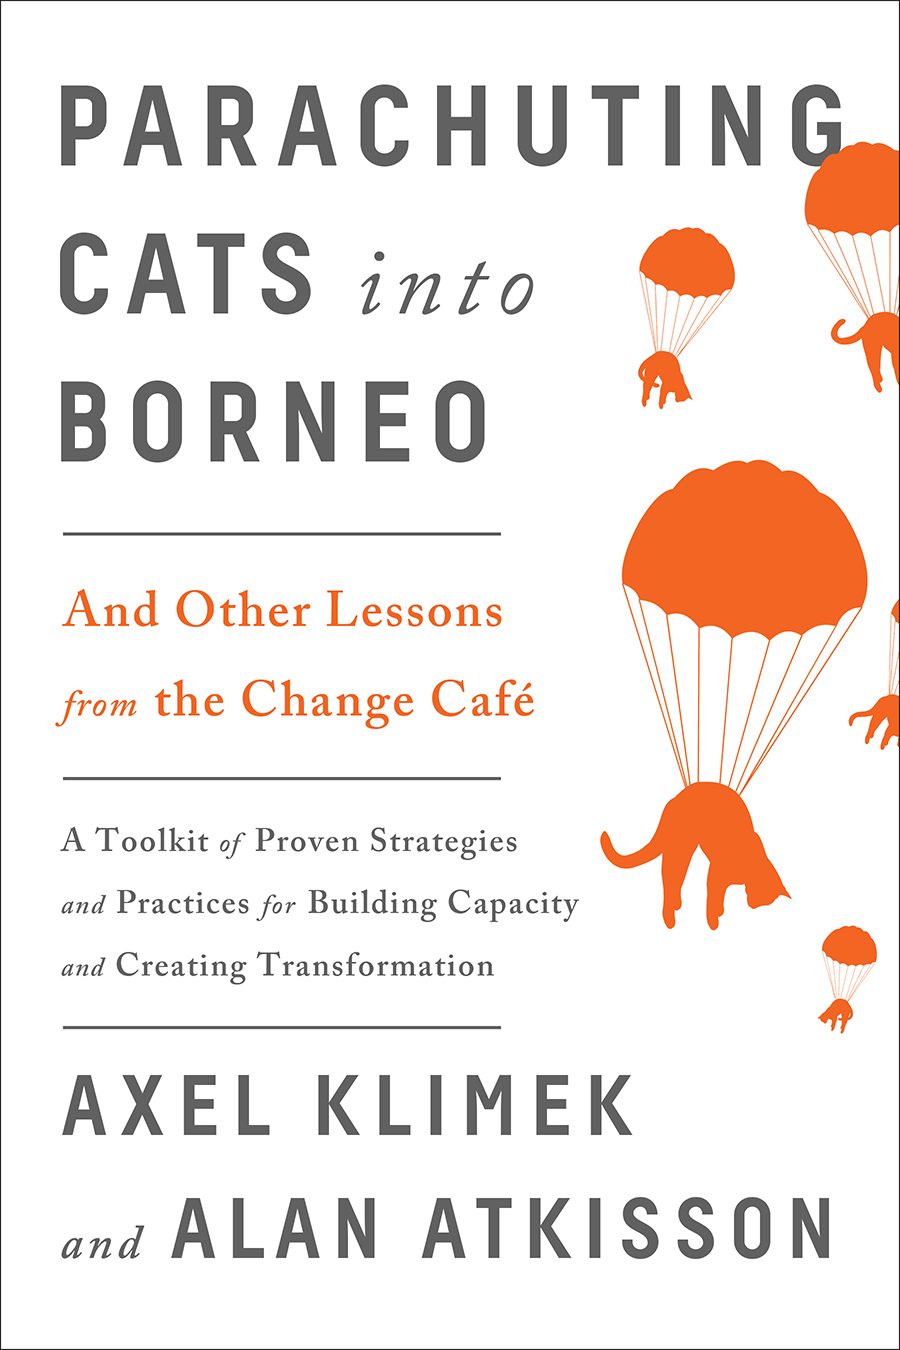 The Parachuting Cats into Borneo cover